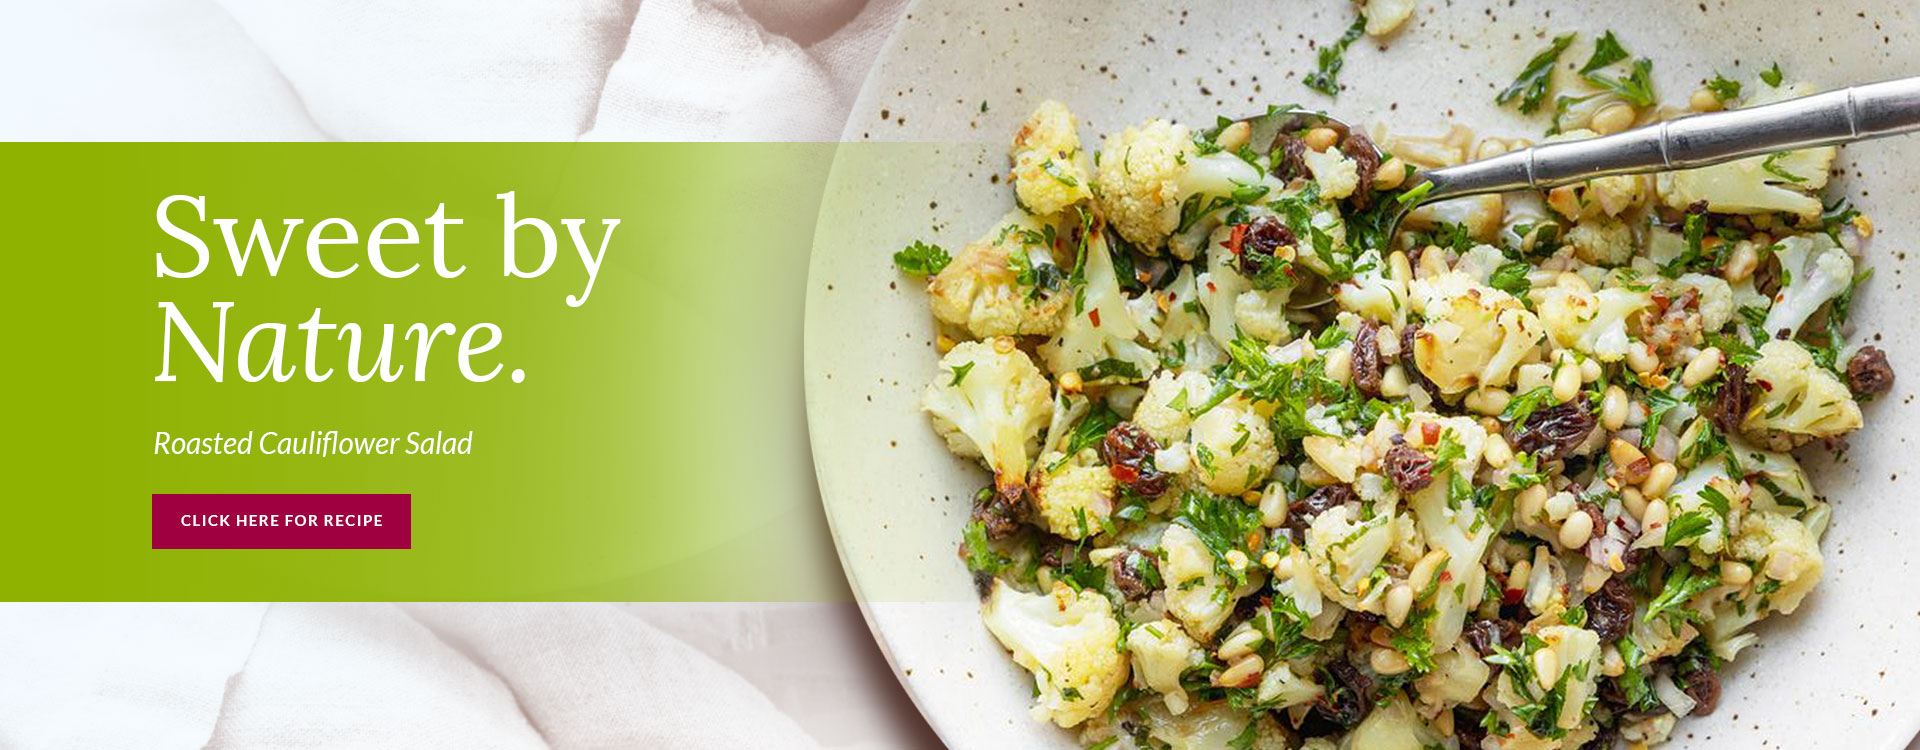 Sweet and Spicy Roasted Cauliflower Salad